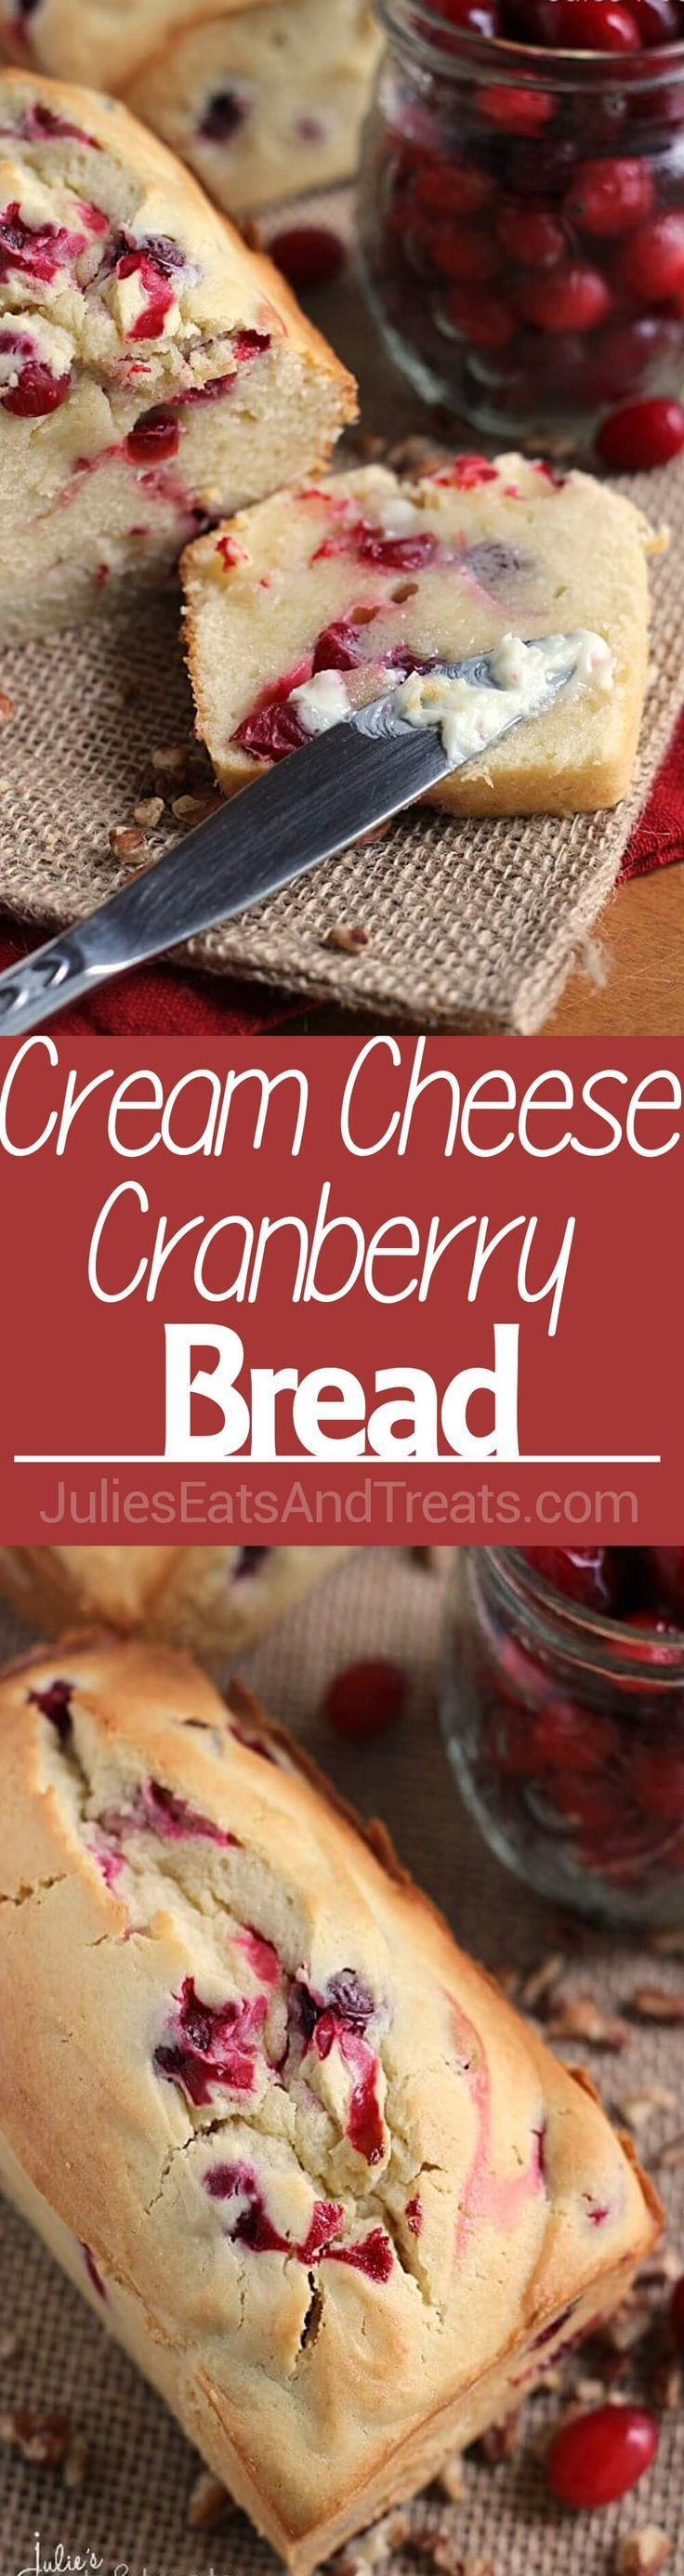 Cream Cheese Cranberry Bread Recipe ~ Amazingly Soft and Tender Quick Bread Stuffed with Tart Cranberries!